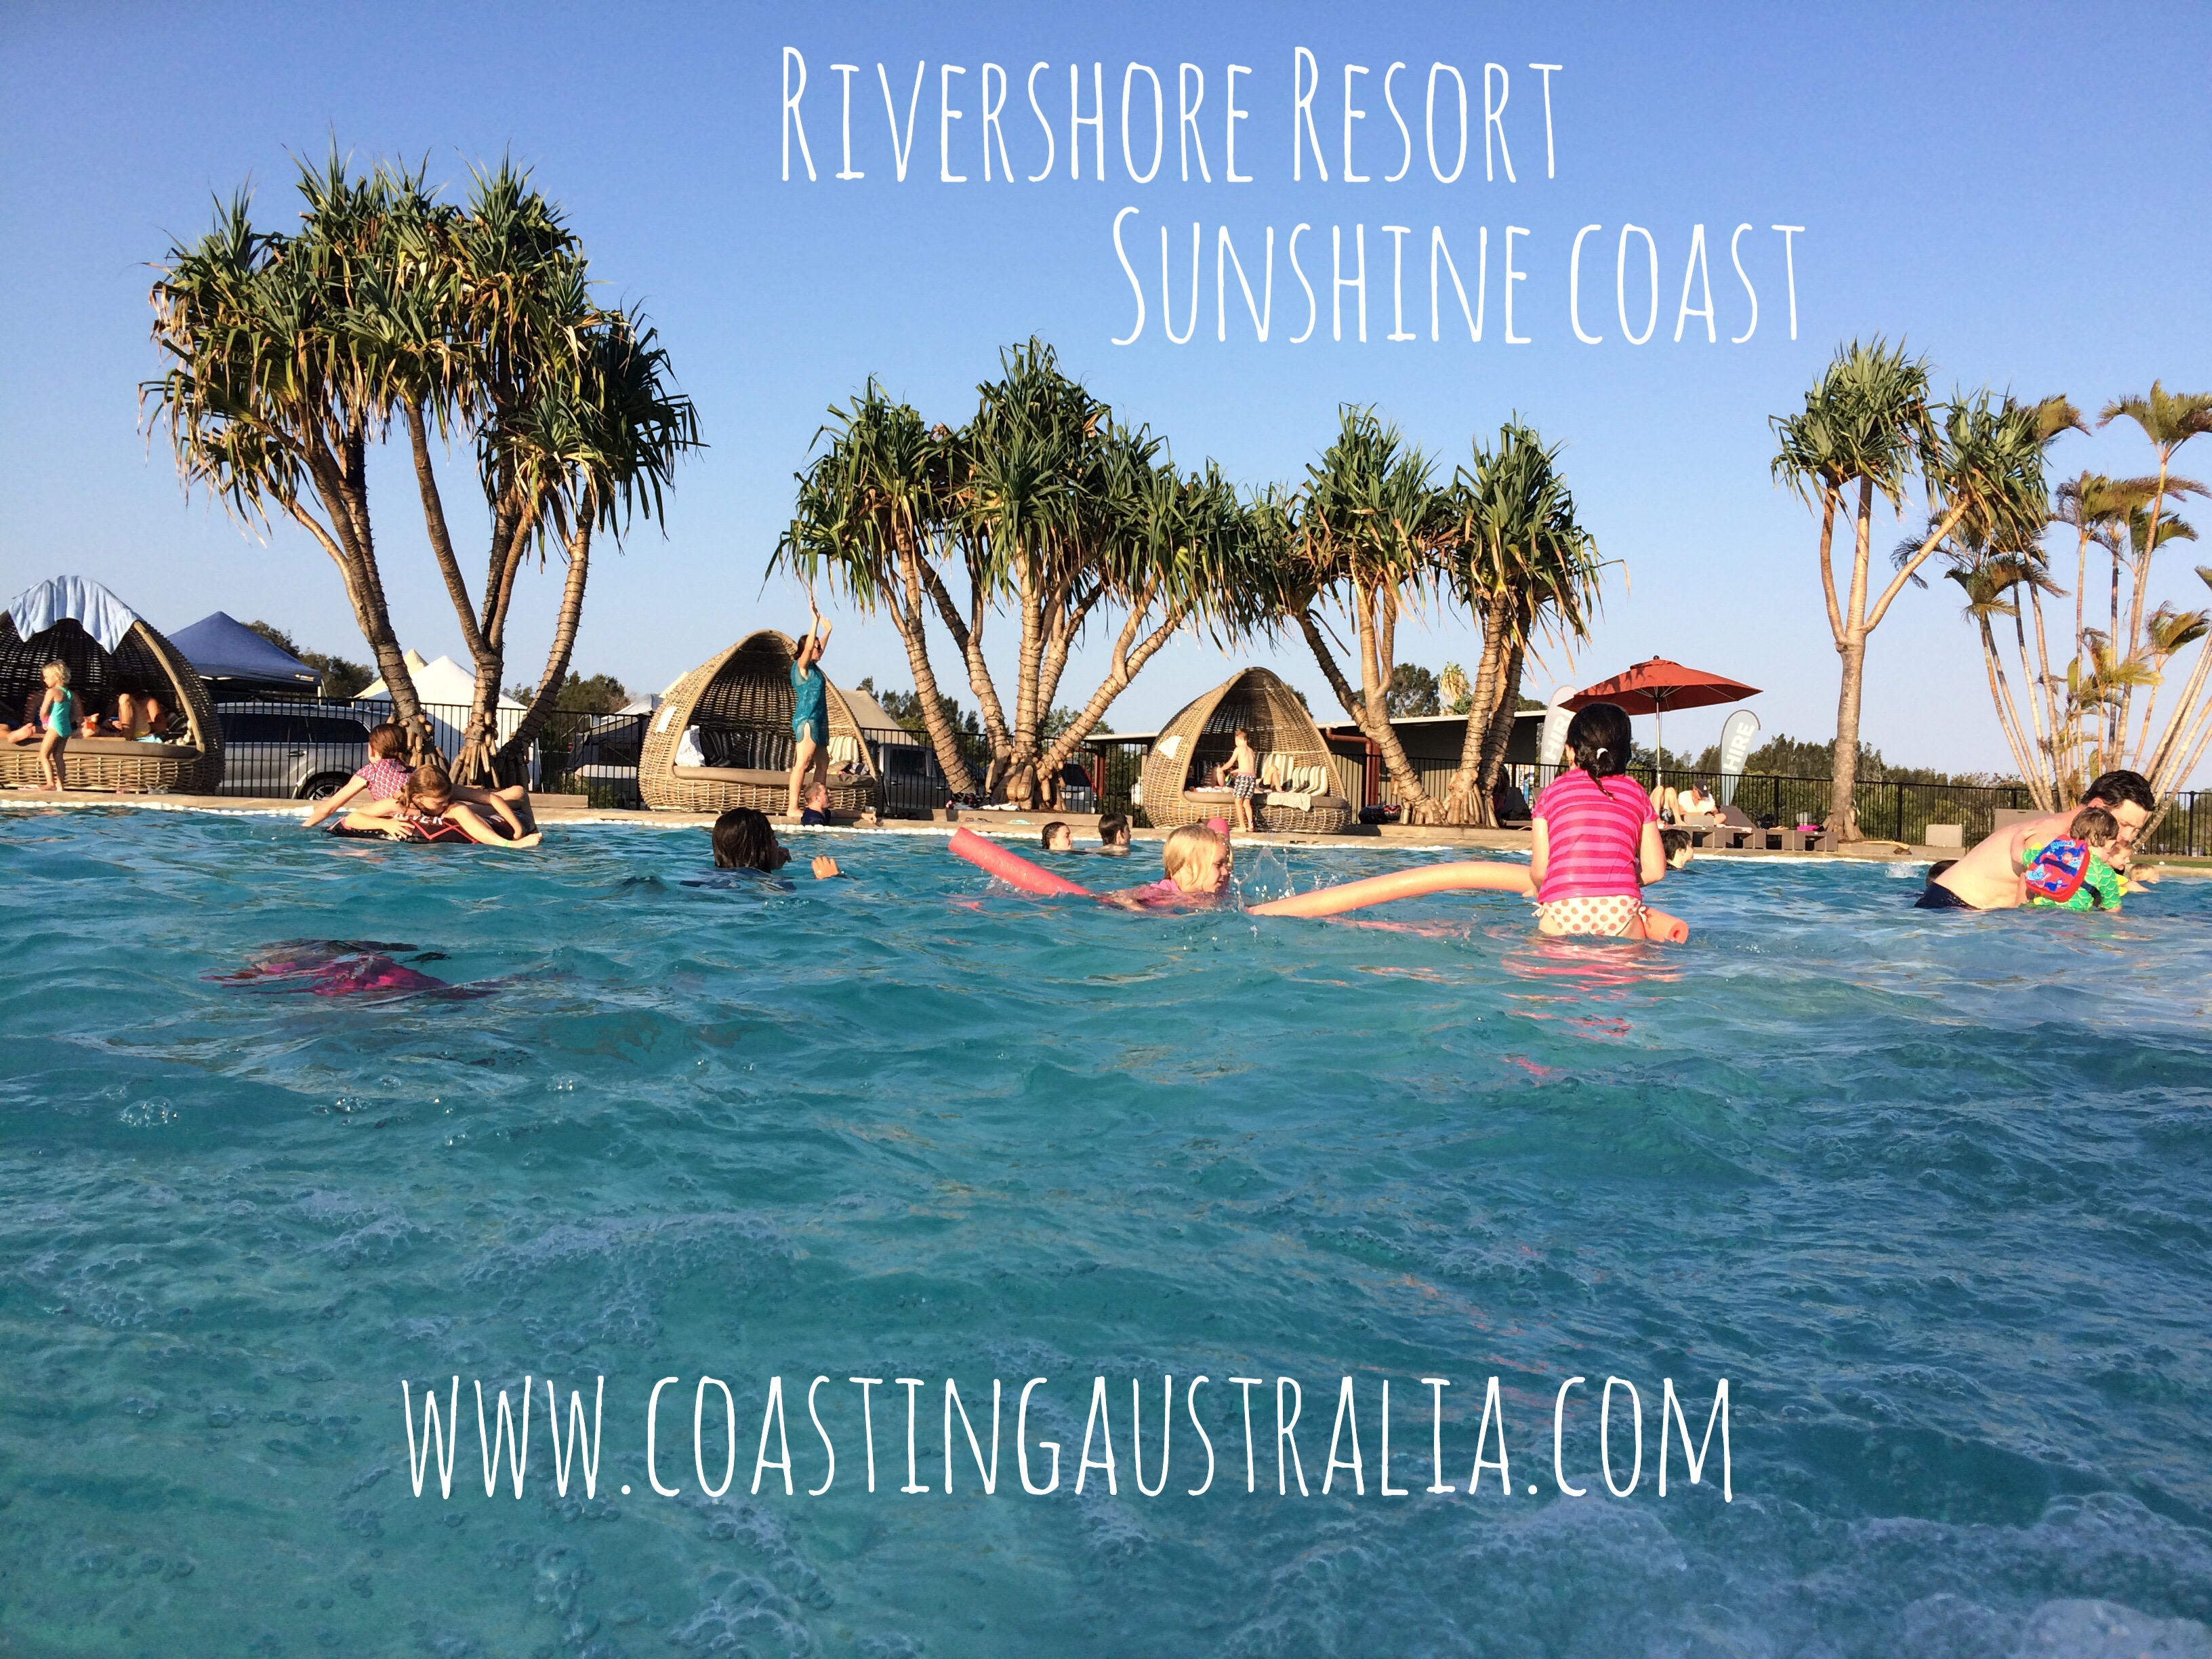 Big 4 Rivershore Resort – Sunshine Coast